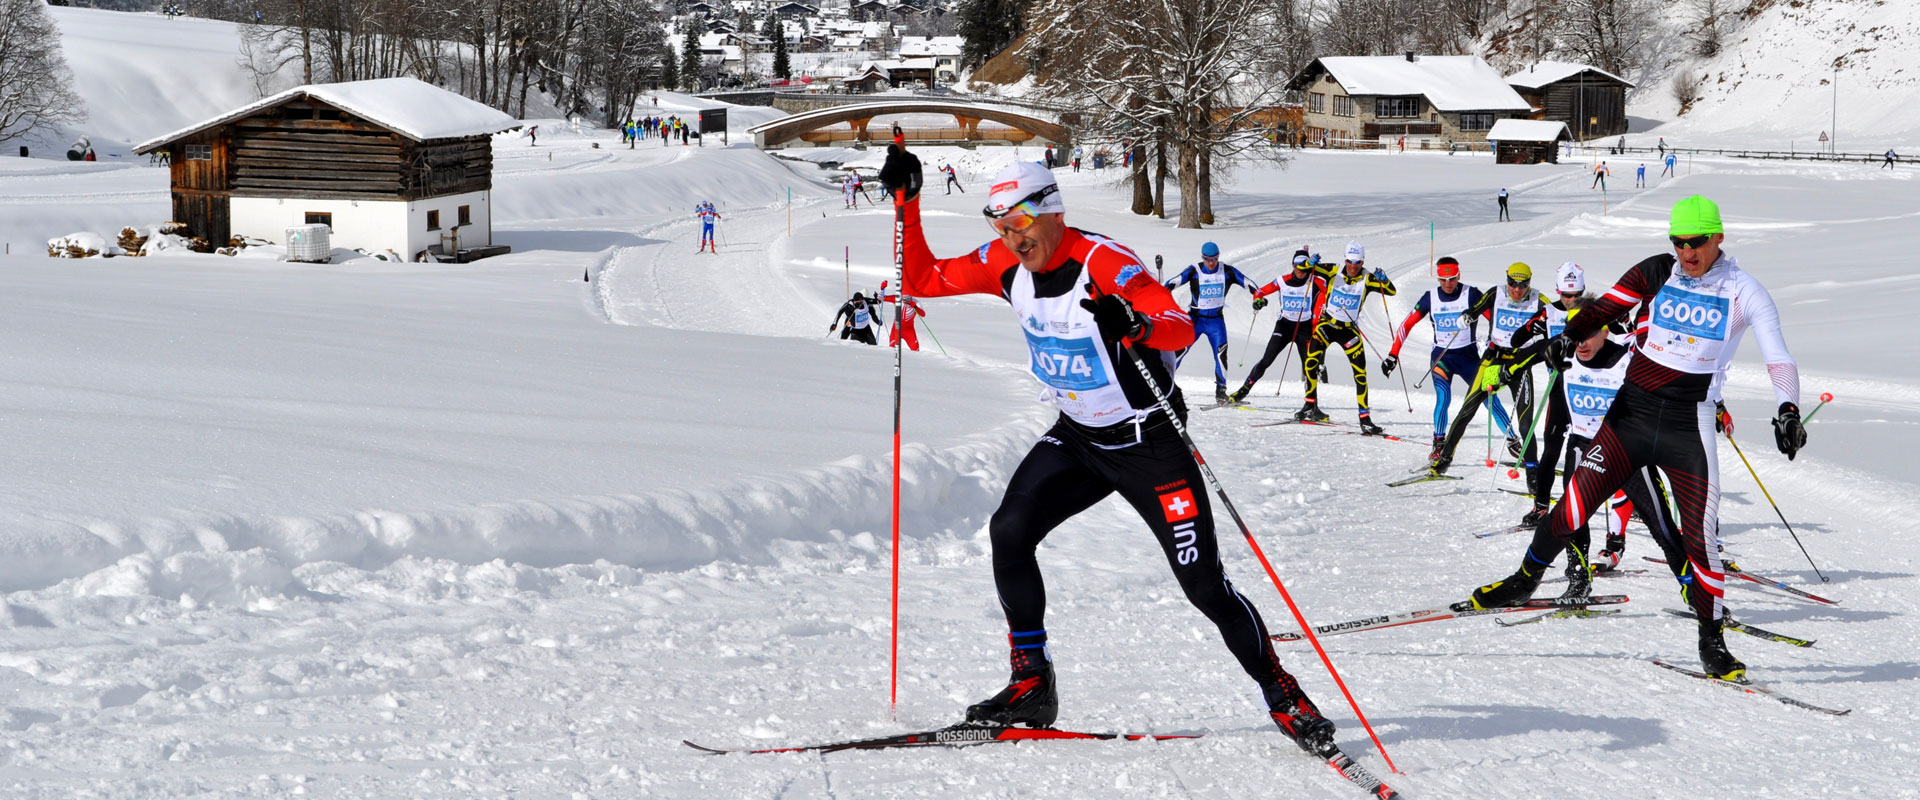 Cross Country Skiing At The 2020 Olympic Winter Games.The World Masters Cross Country Ski Association Wma